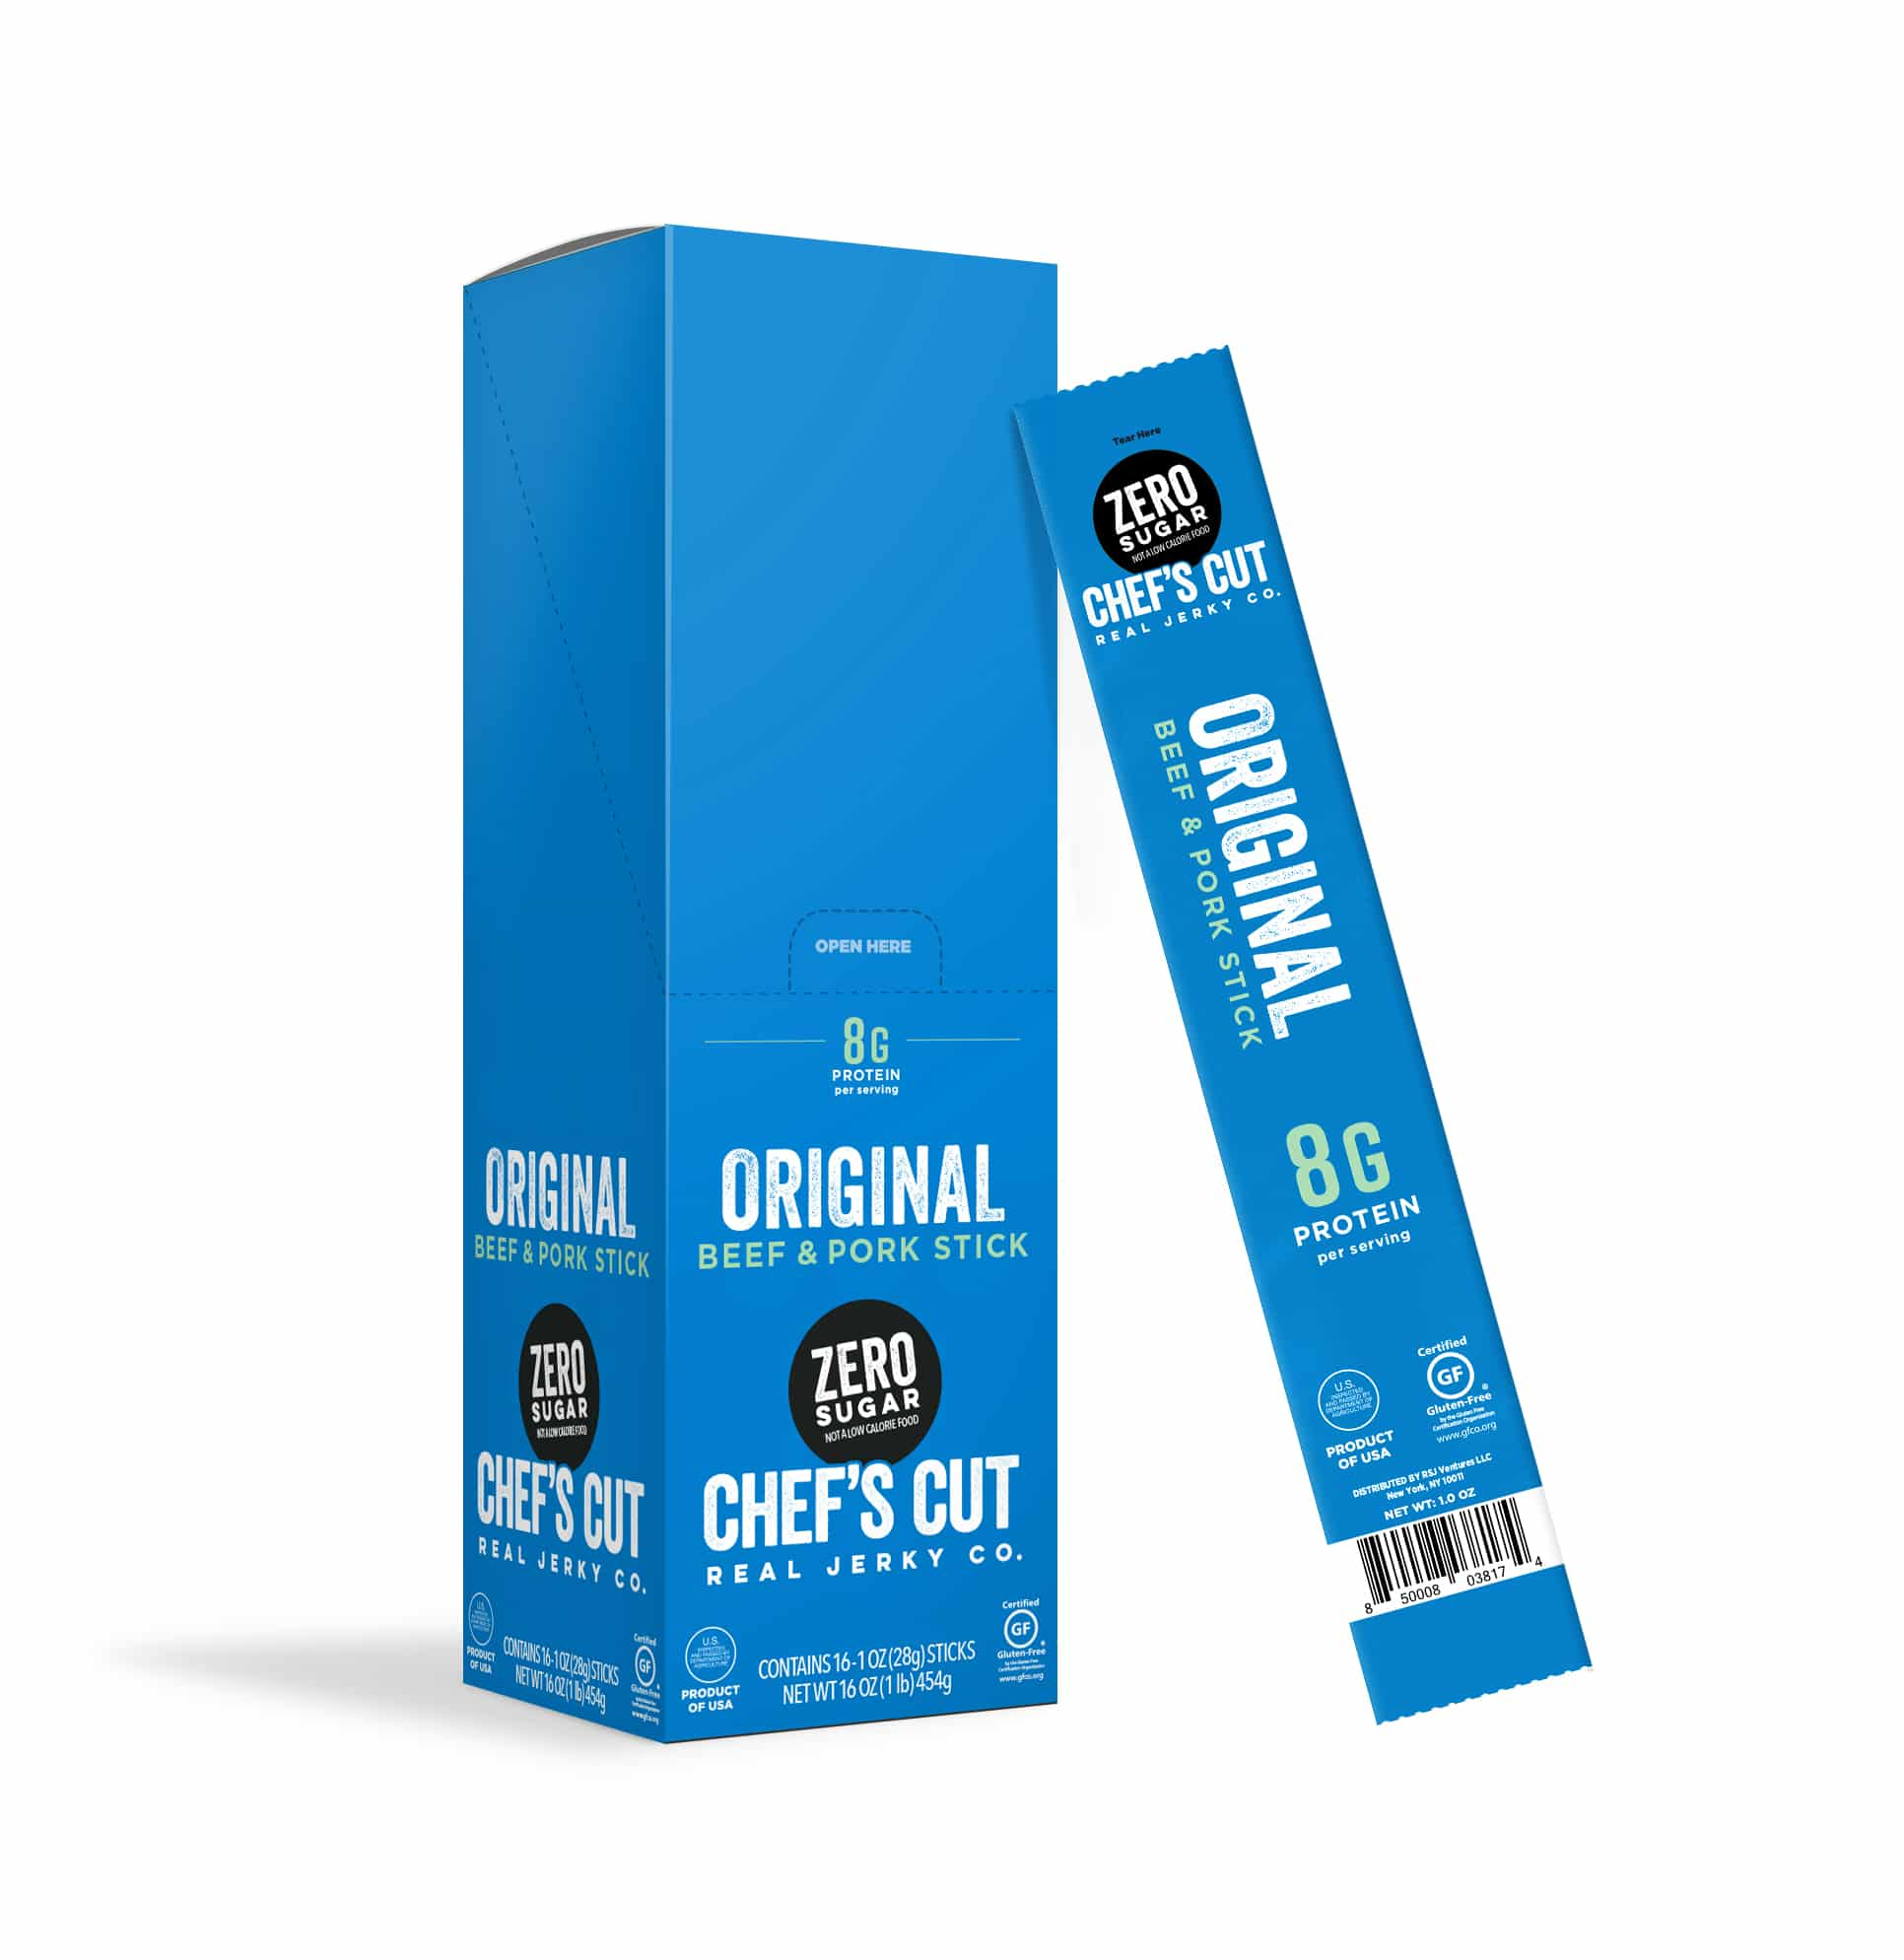 Chef's Cut Real Jerky Co. Unveils New Zero Sugar Meat Stick at Winter Fancy Food Show